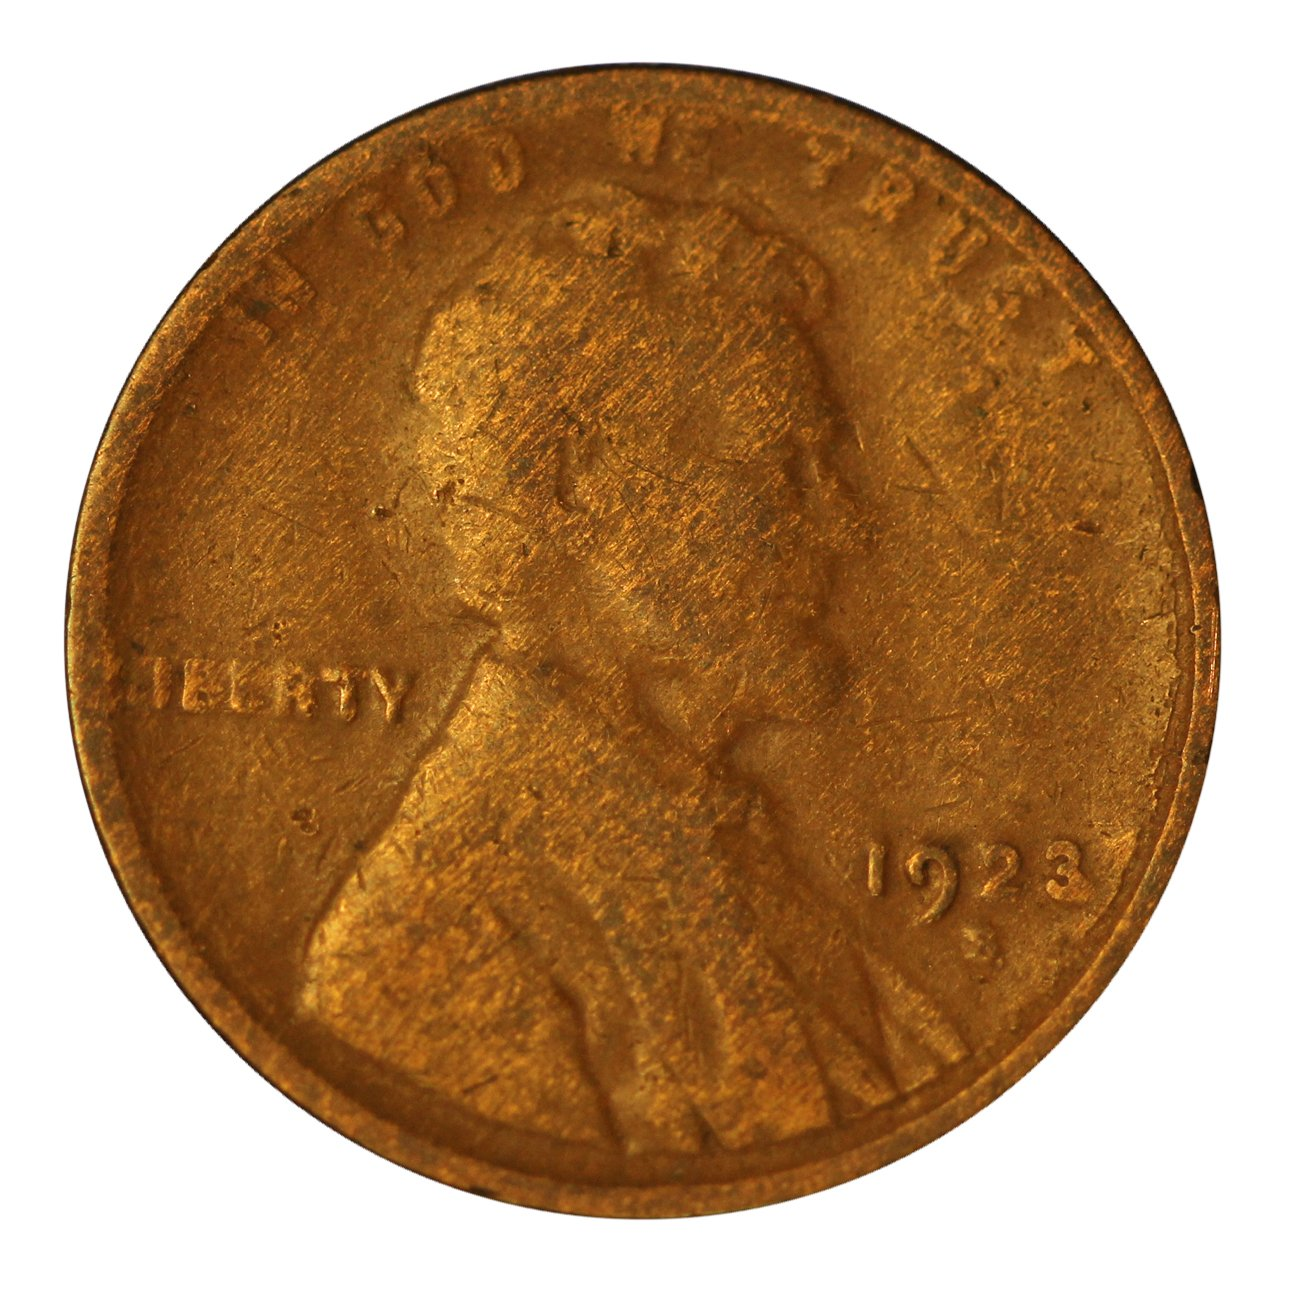 1923 S Wheat Penny About Good